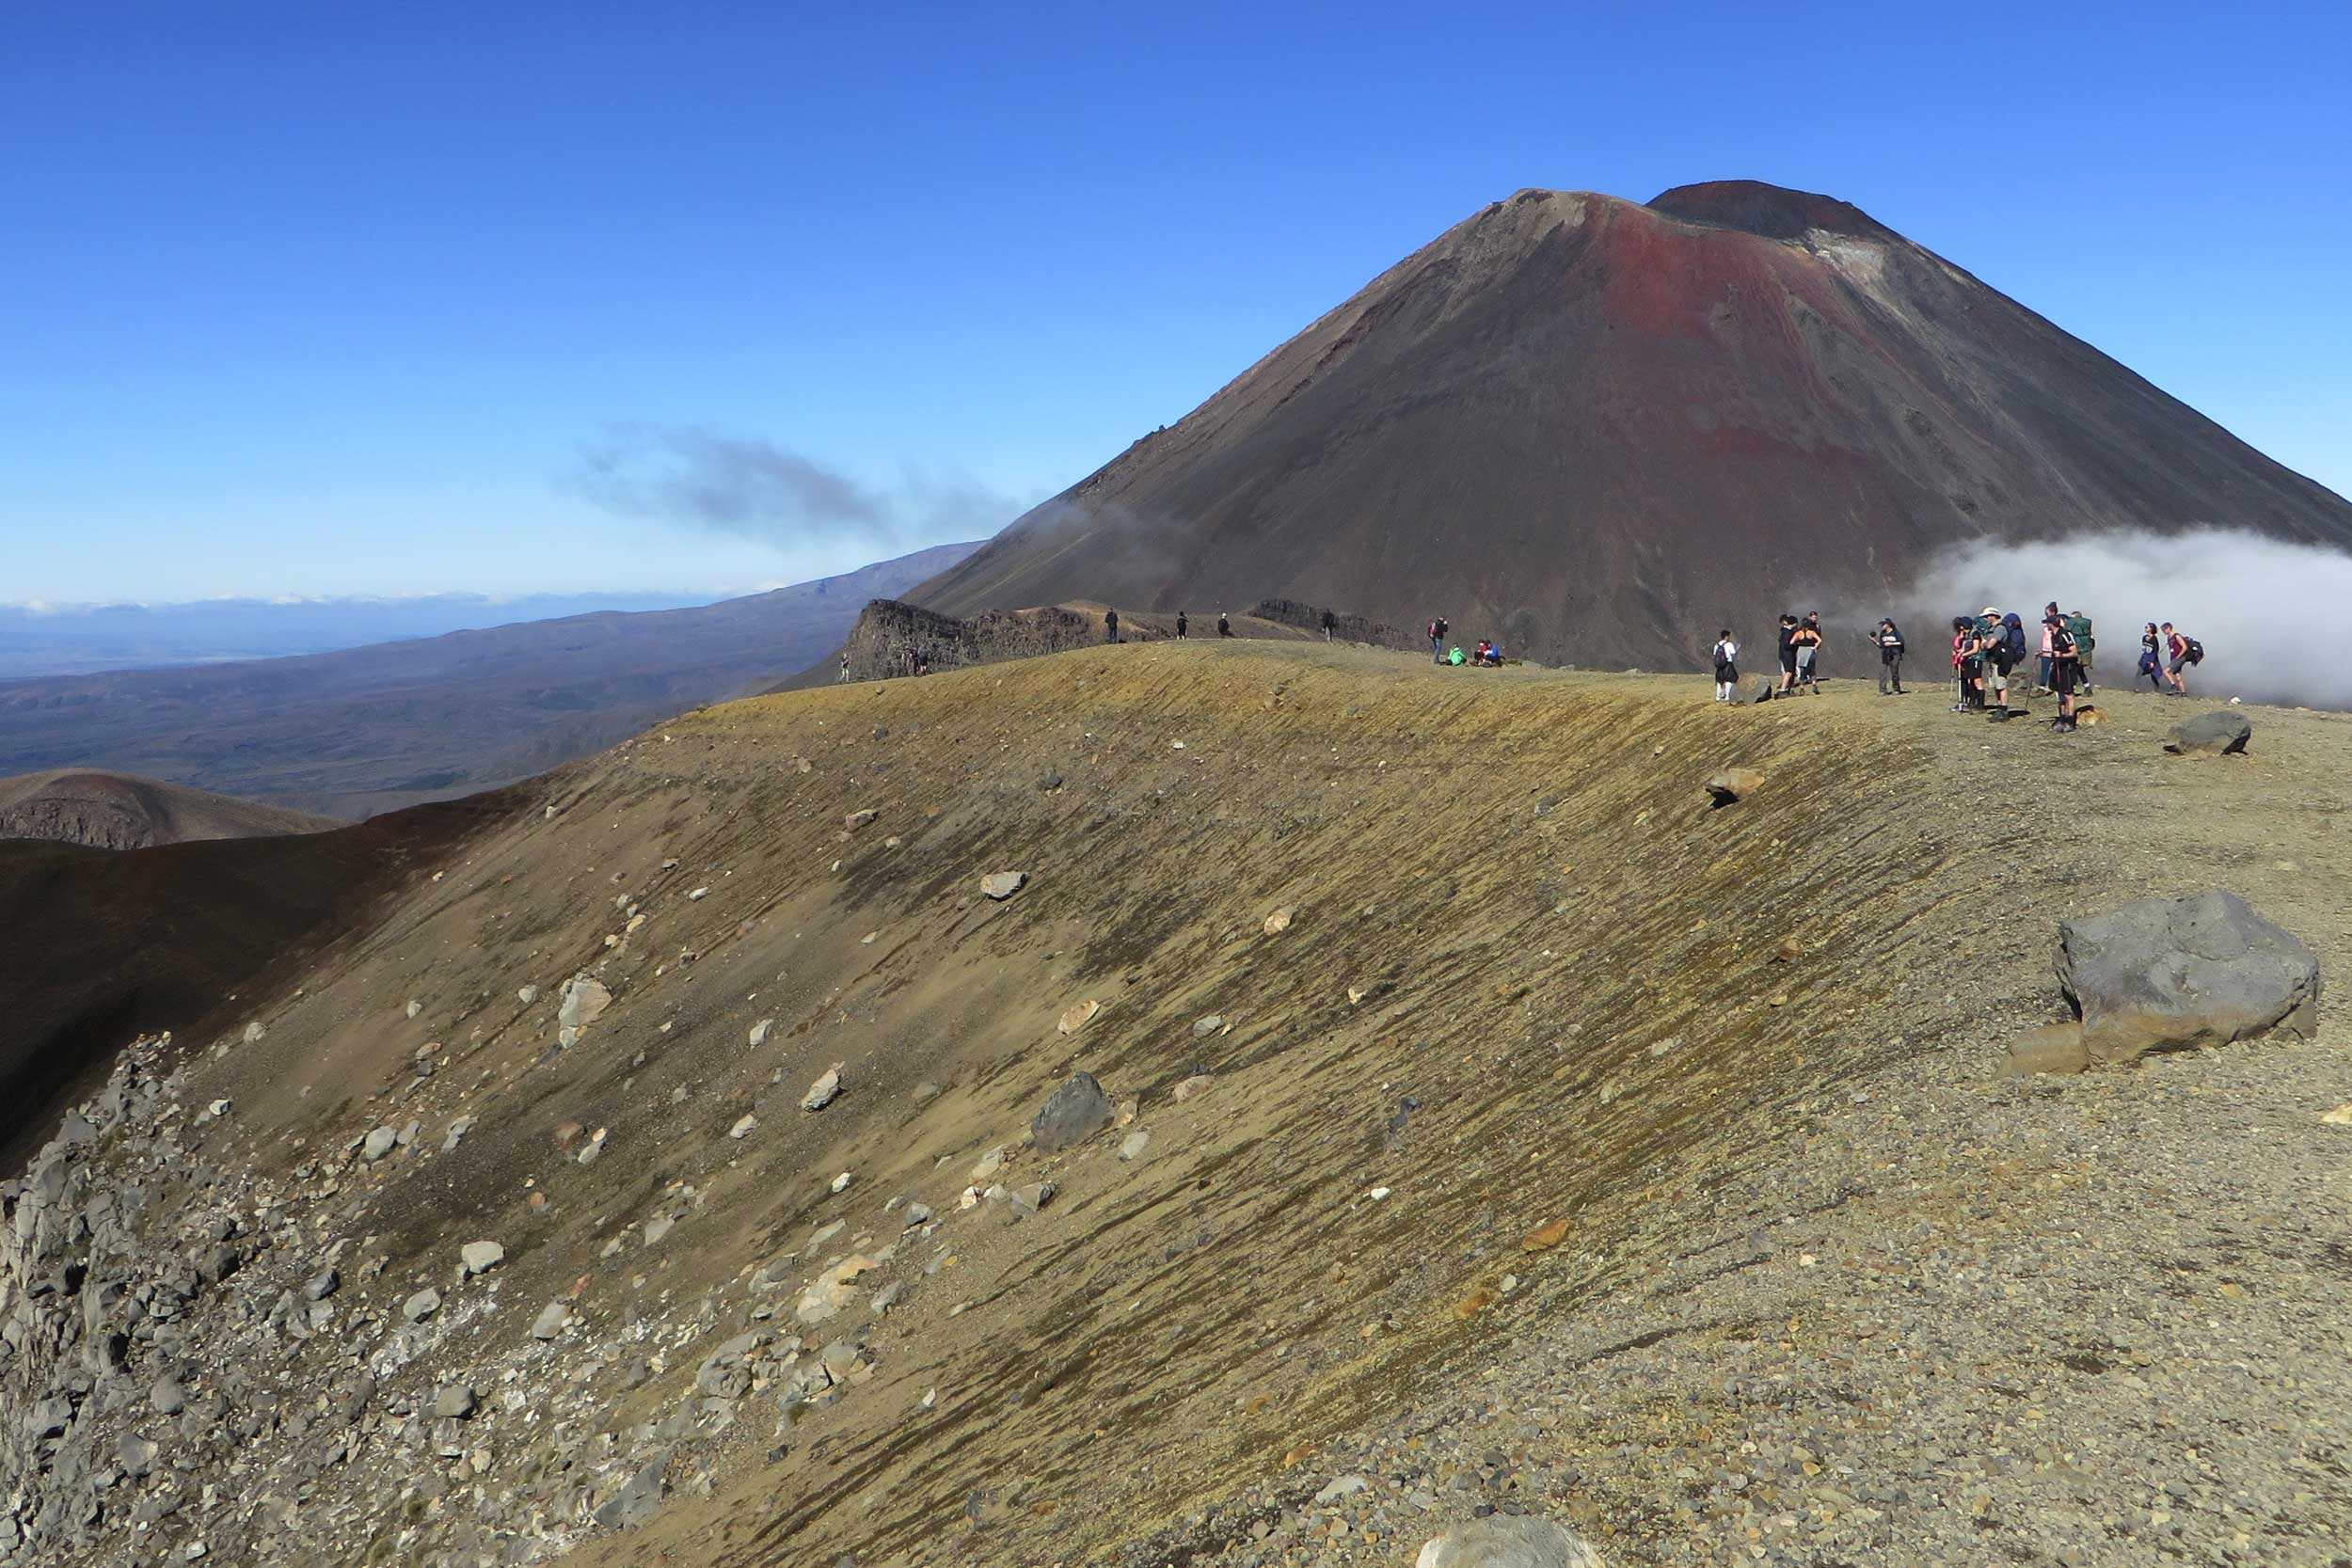 Walkers standing on a ridge, Tongariro Crossing, New Zealand